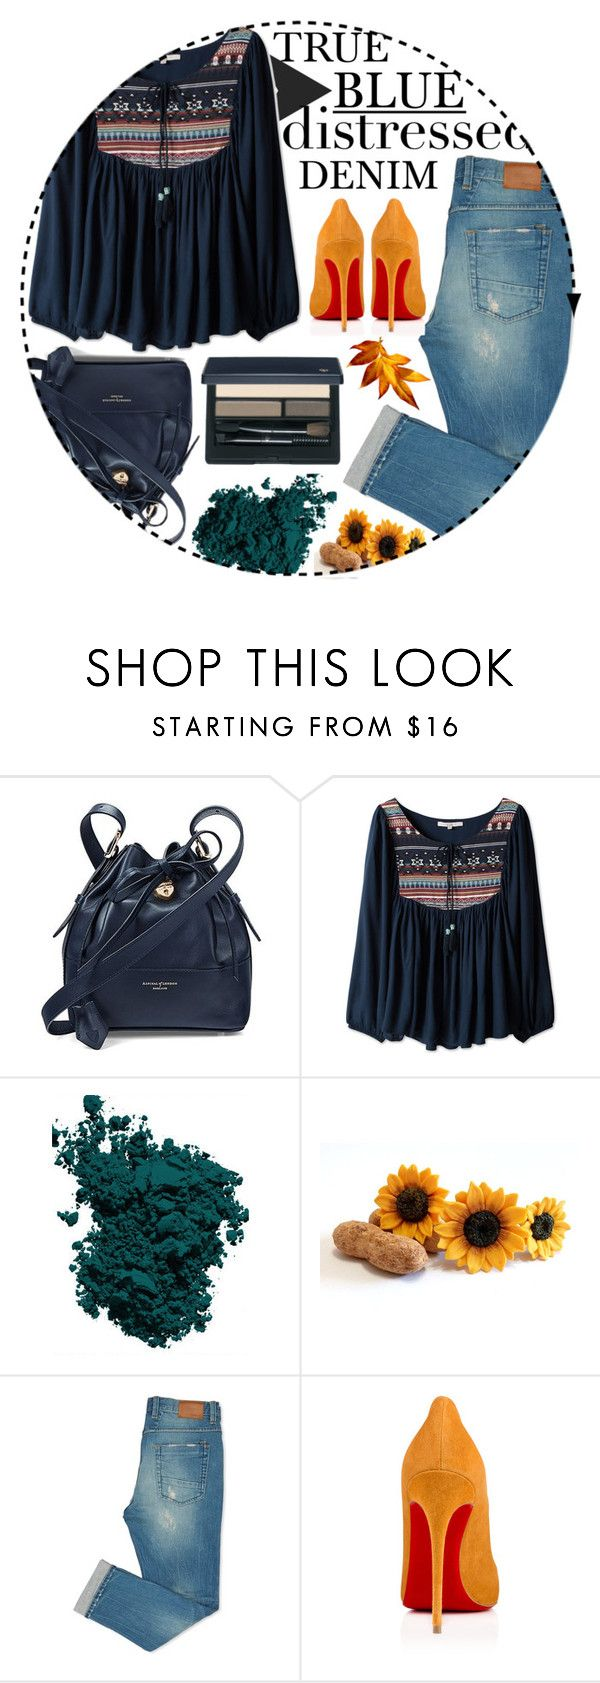 """True Blue: Distressed Denim #3"" by moonlight-shadows ❤ liked on Polyvore featuring Aspinal of London, Chantecaille, Christian Louboutin and Clé de Peau Beauté"